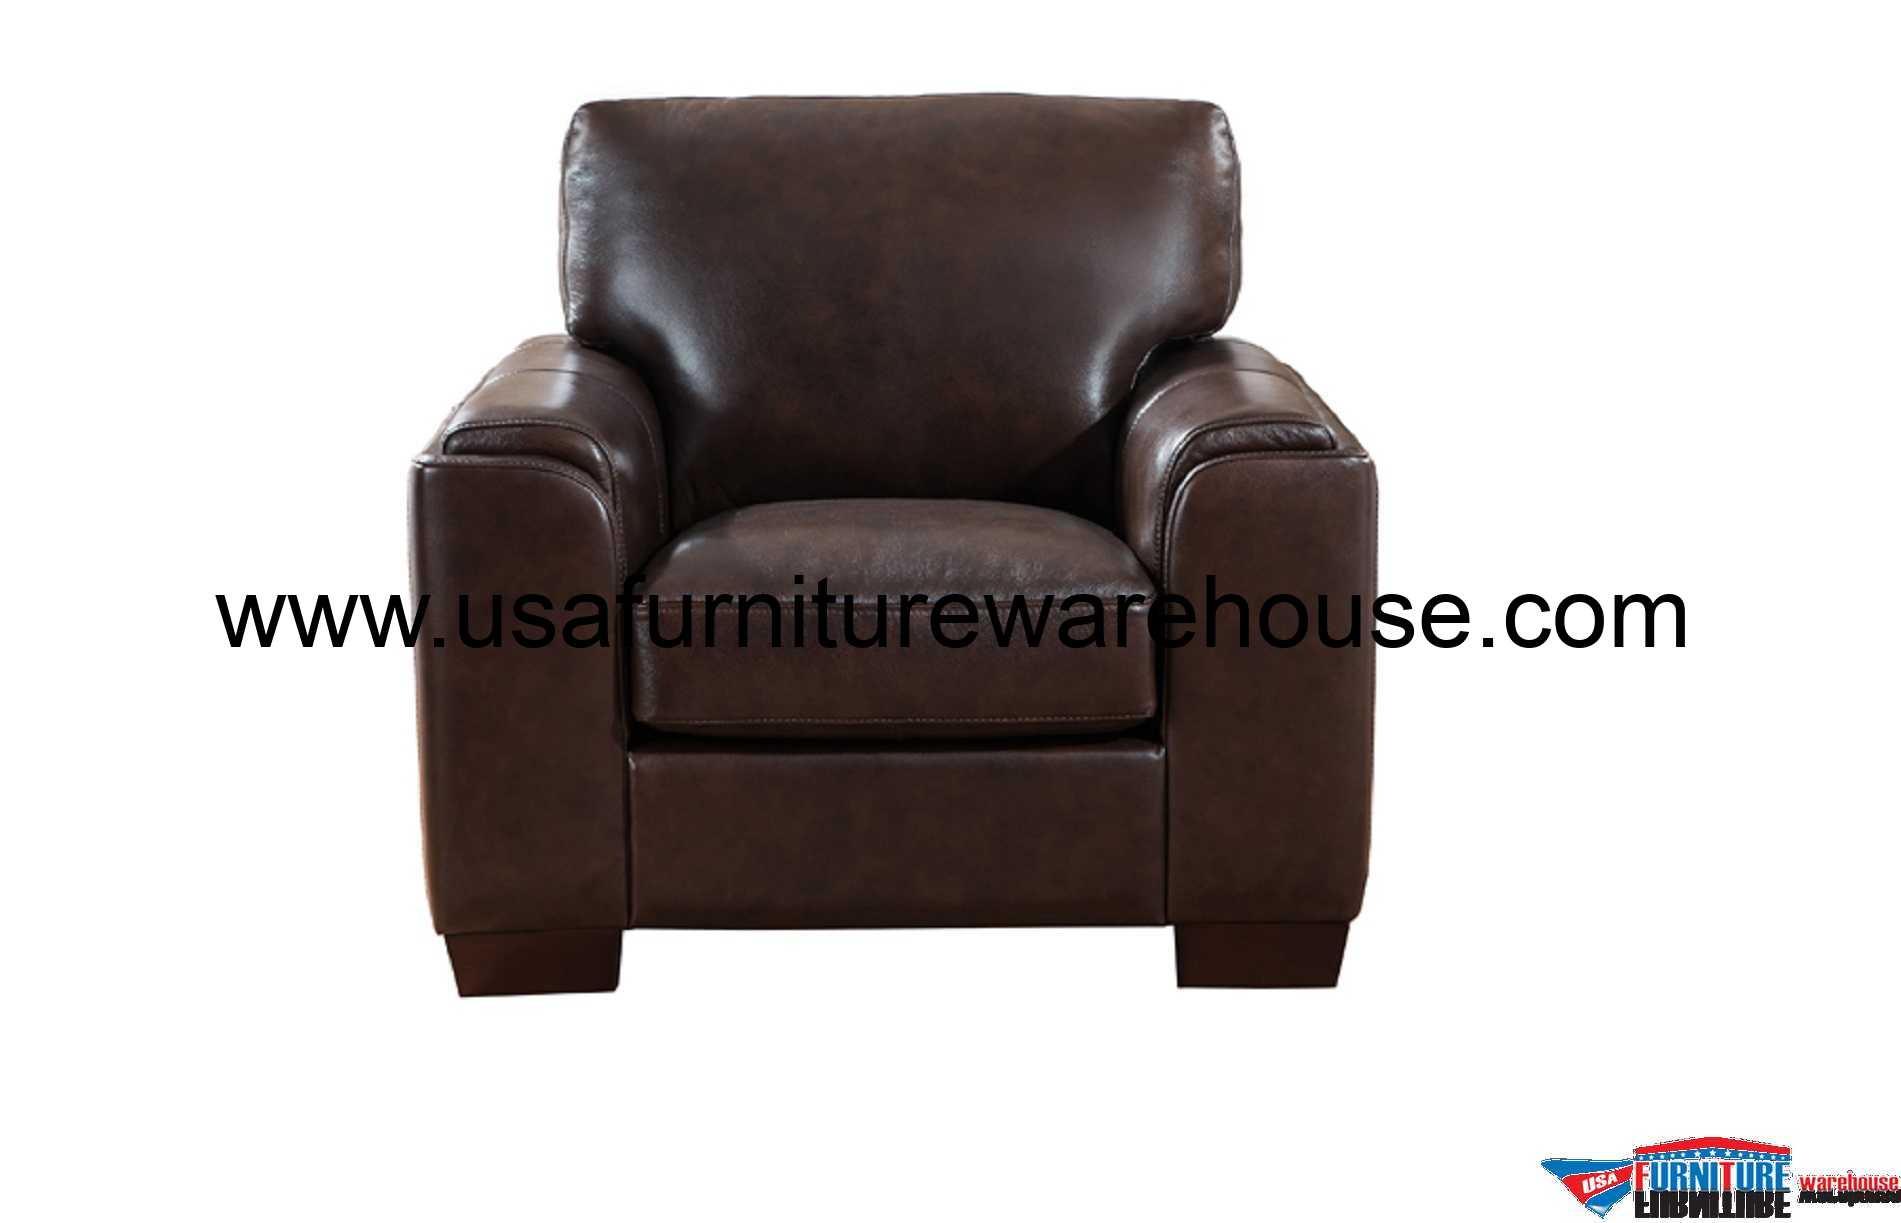 Top Grain Leather Office Chair Suzanne Full Top Grain Dark Brown Leather Chair